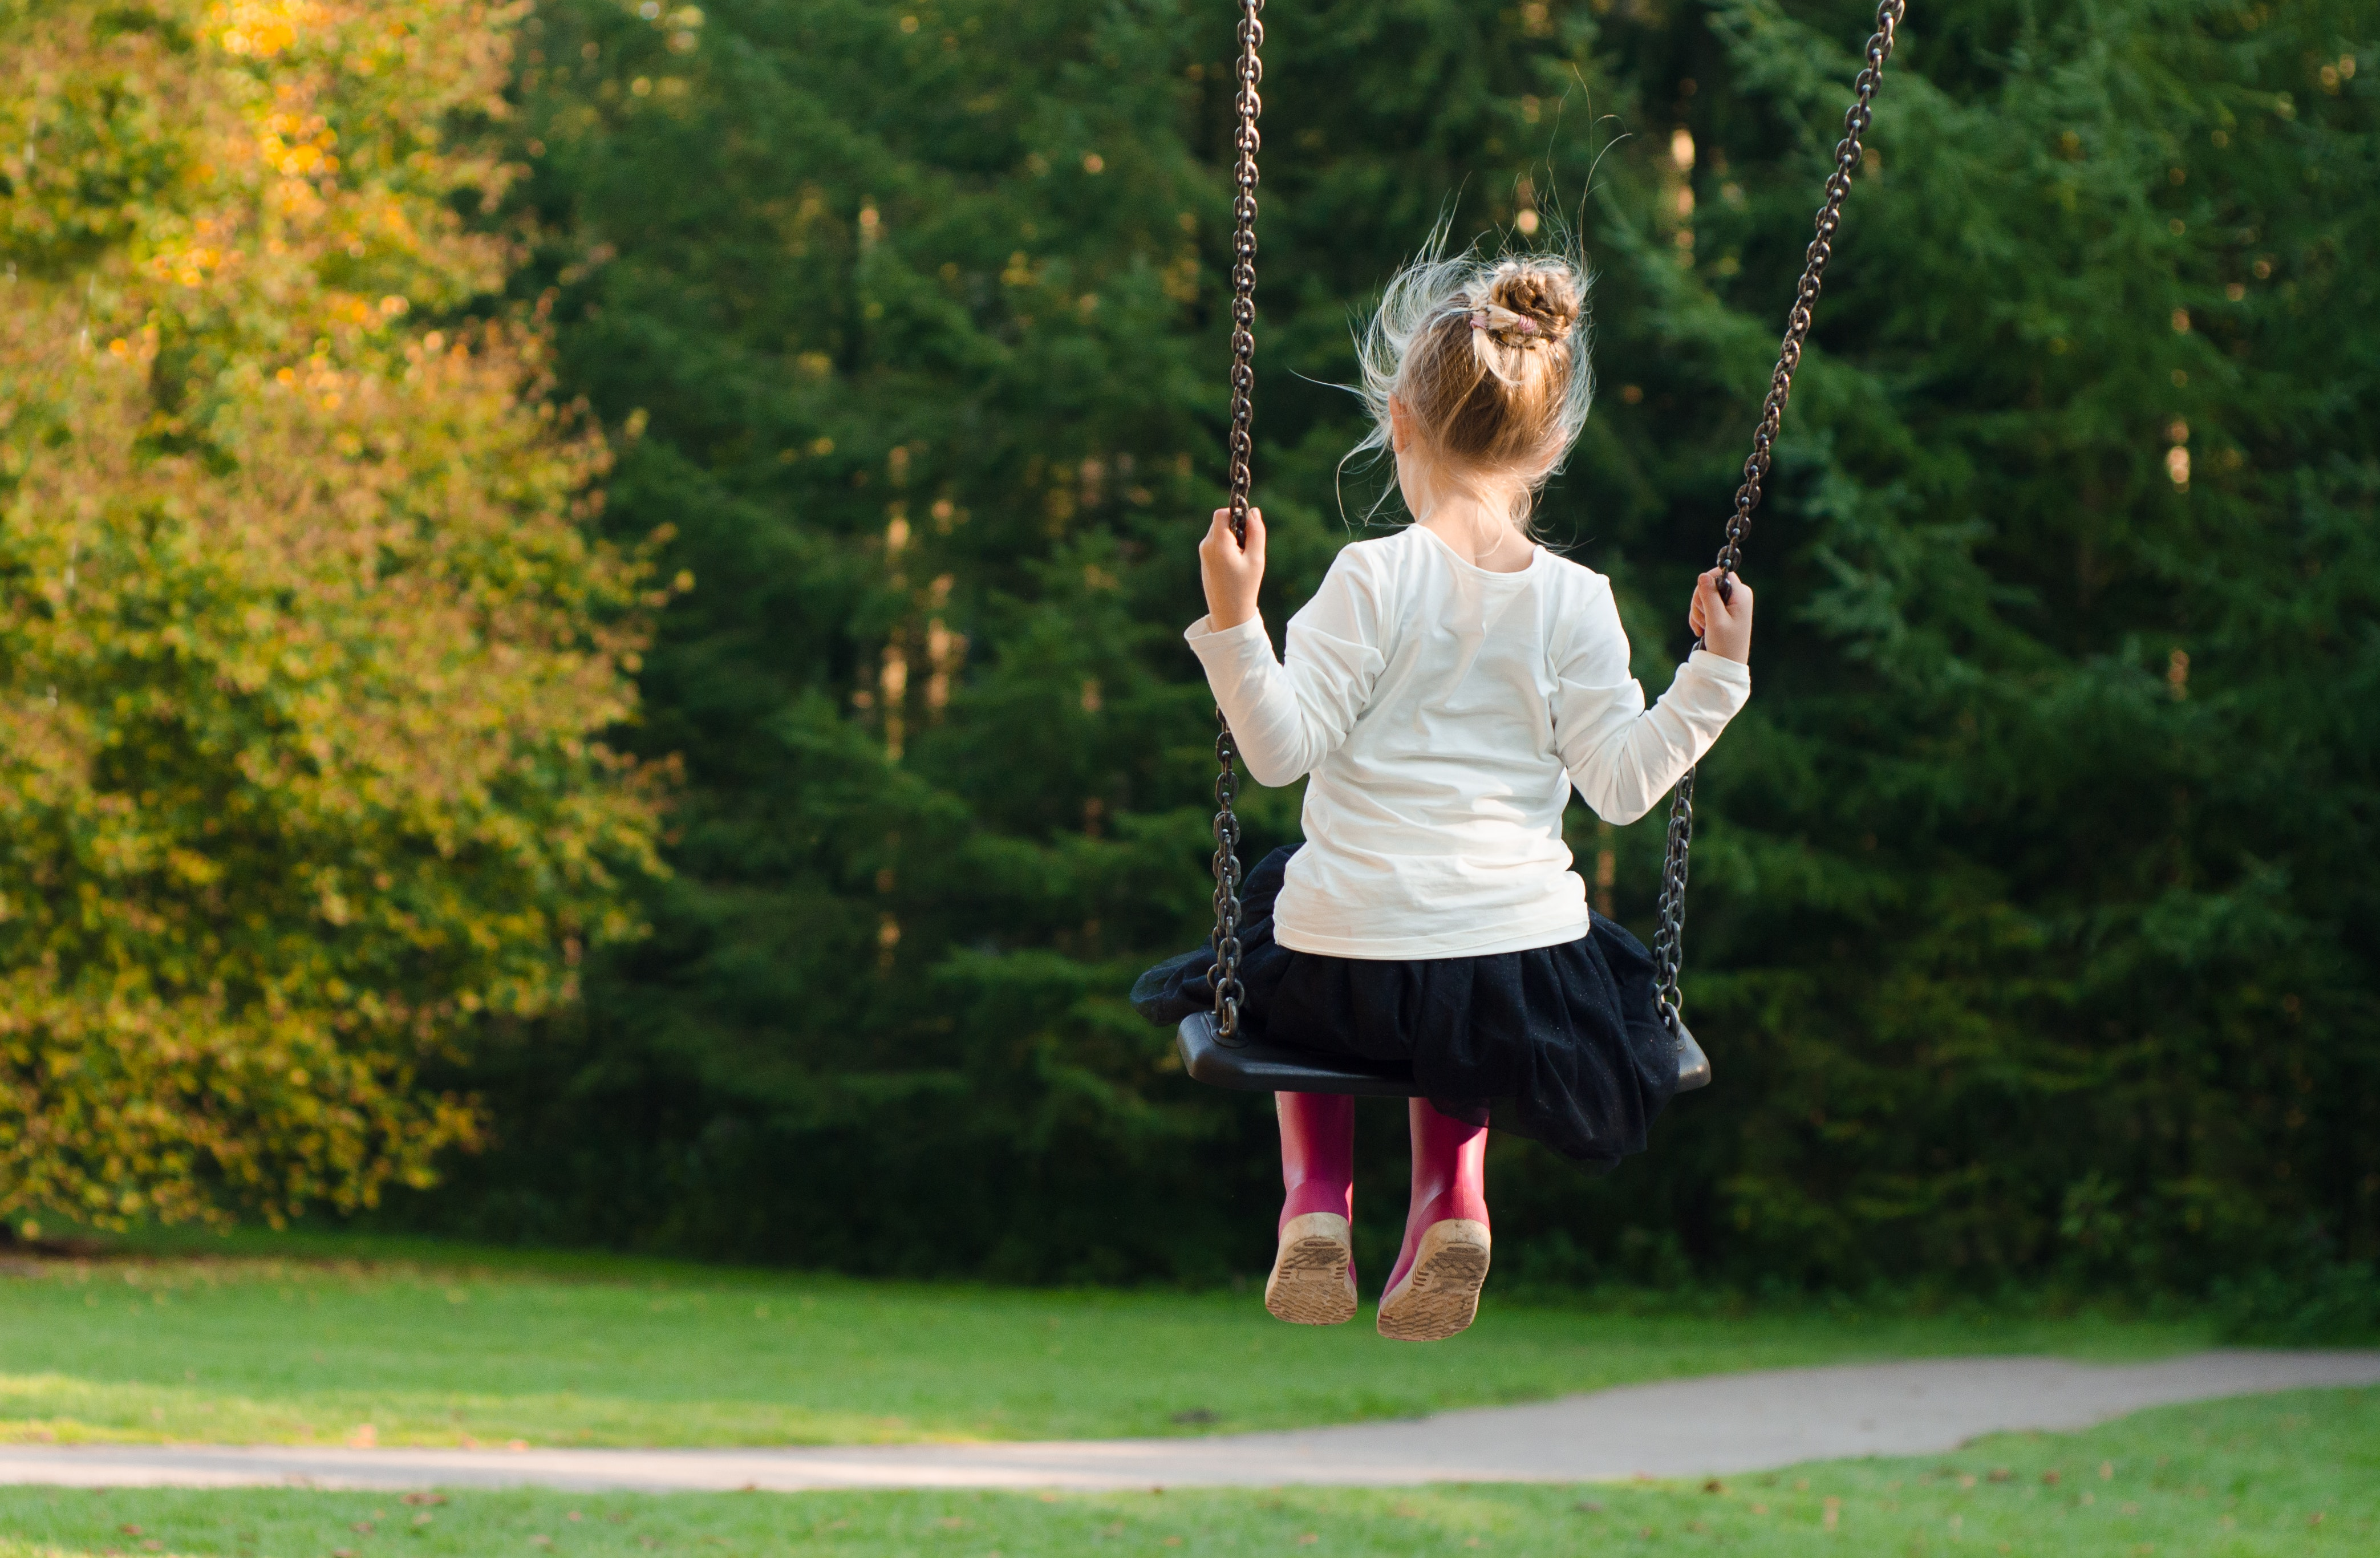 Girl in White Long Sleeve Shirt and Black Skirt Sitting on Swing during Day Time, Trees, Young, Swing, Person, HQ Photo